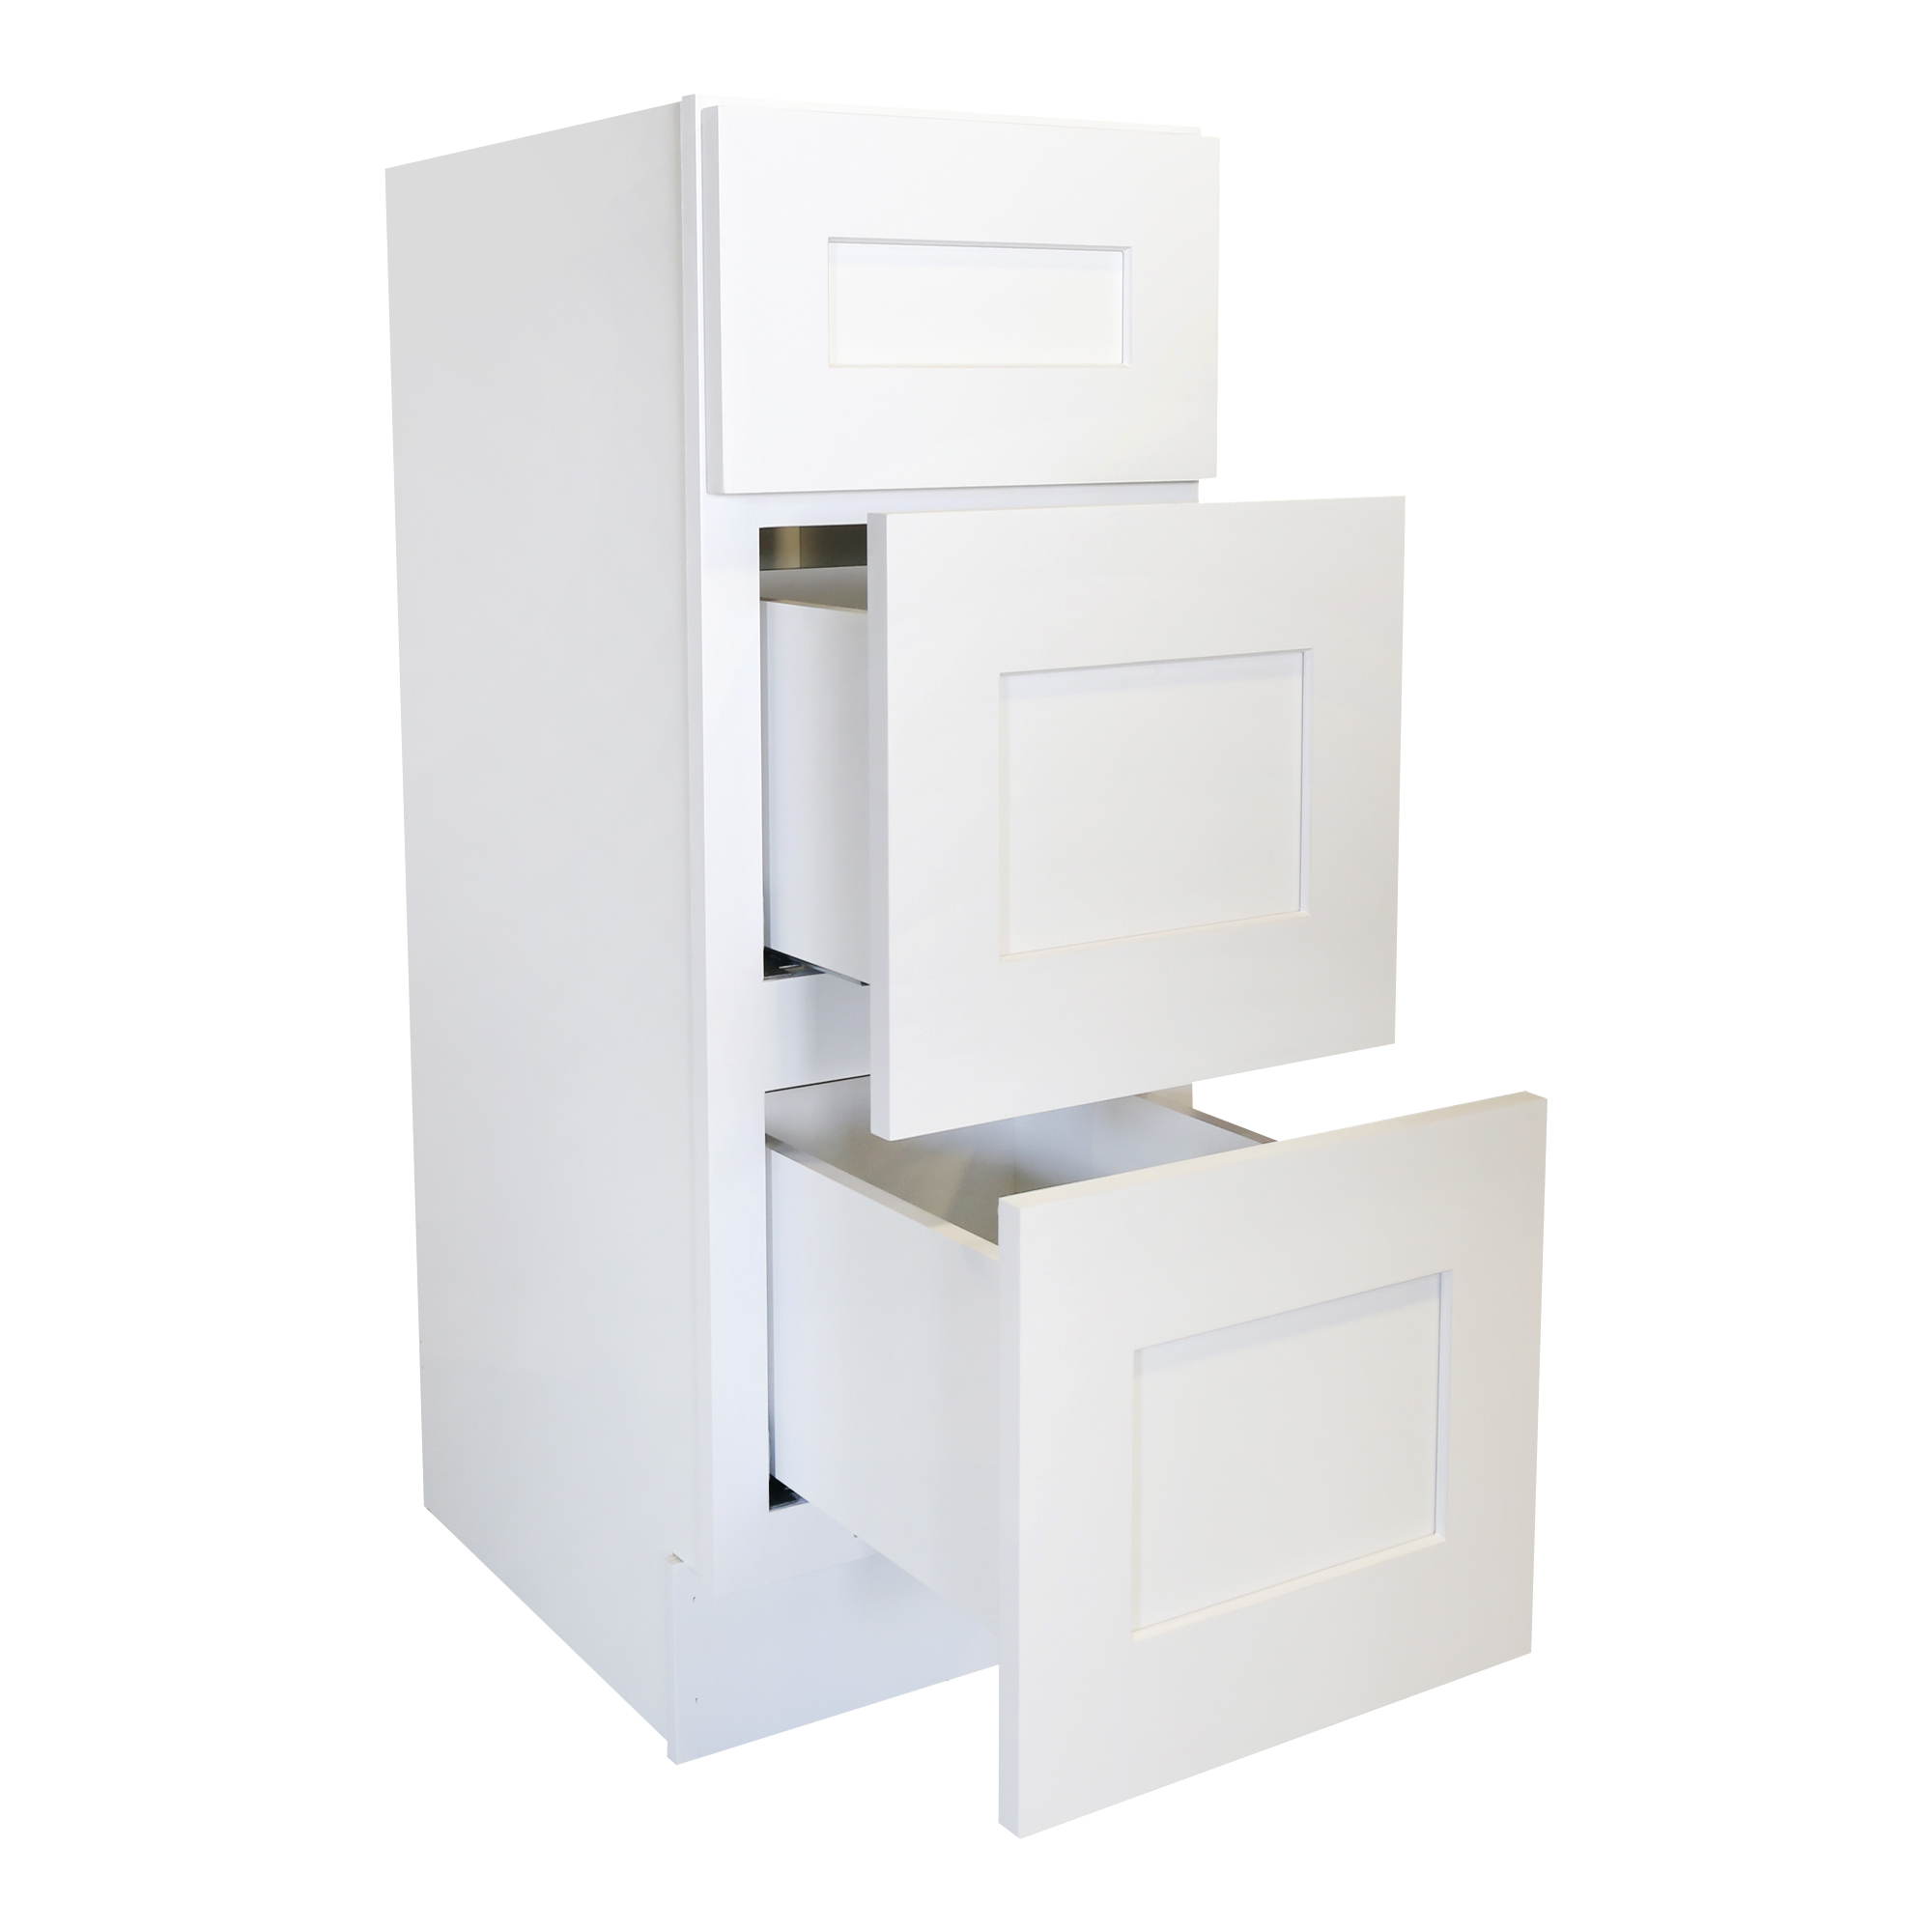 Ready to Assemble 12Wx34.5Hx21D in. Shaker VANITY DRAWER BASE-3 DRAWERS in White